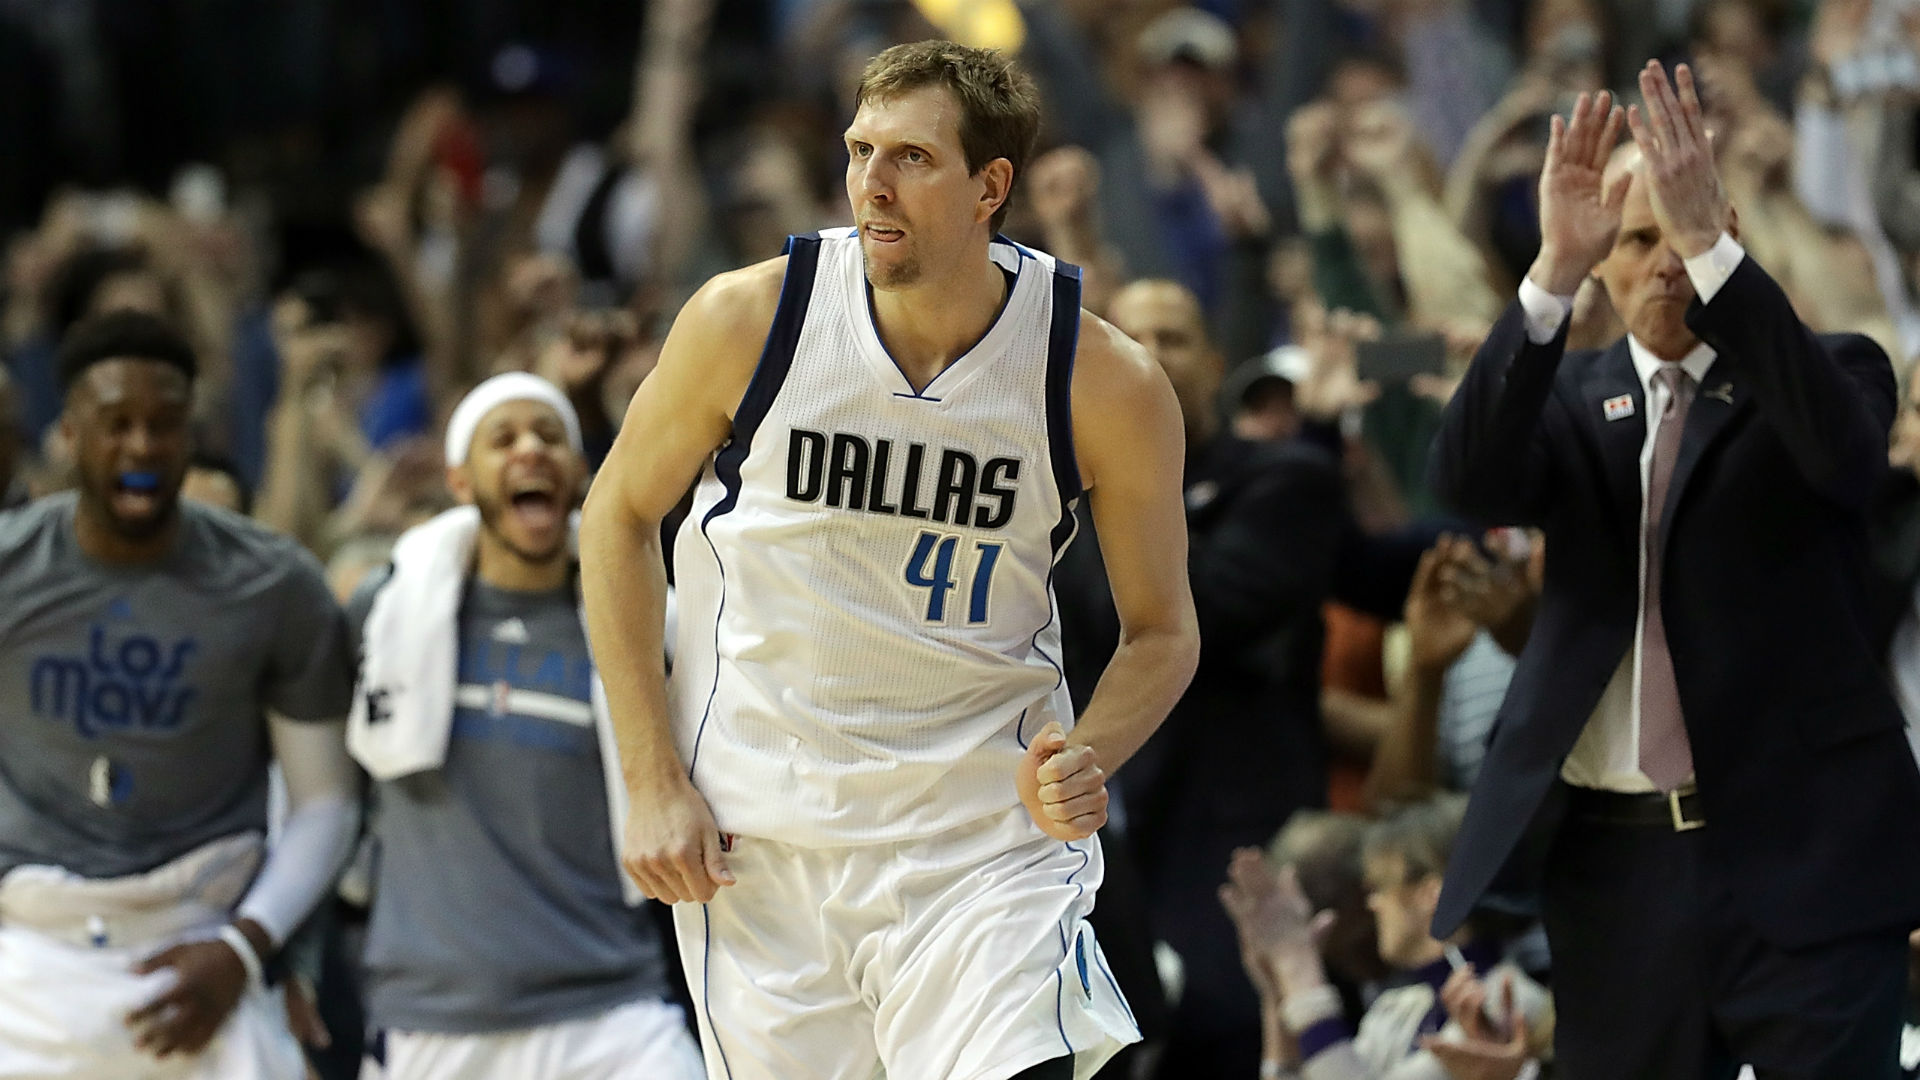 Mavericks will decline Dirk Nowitzki option and sign him to new deal